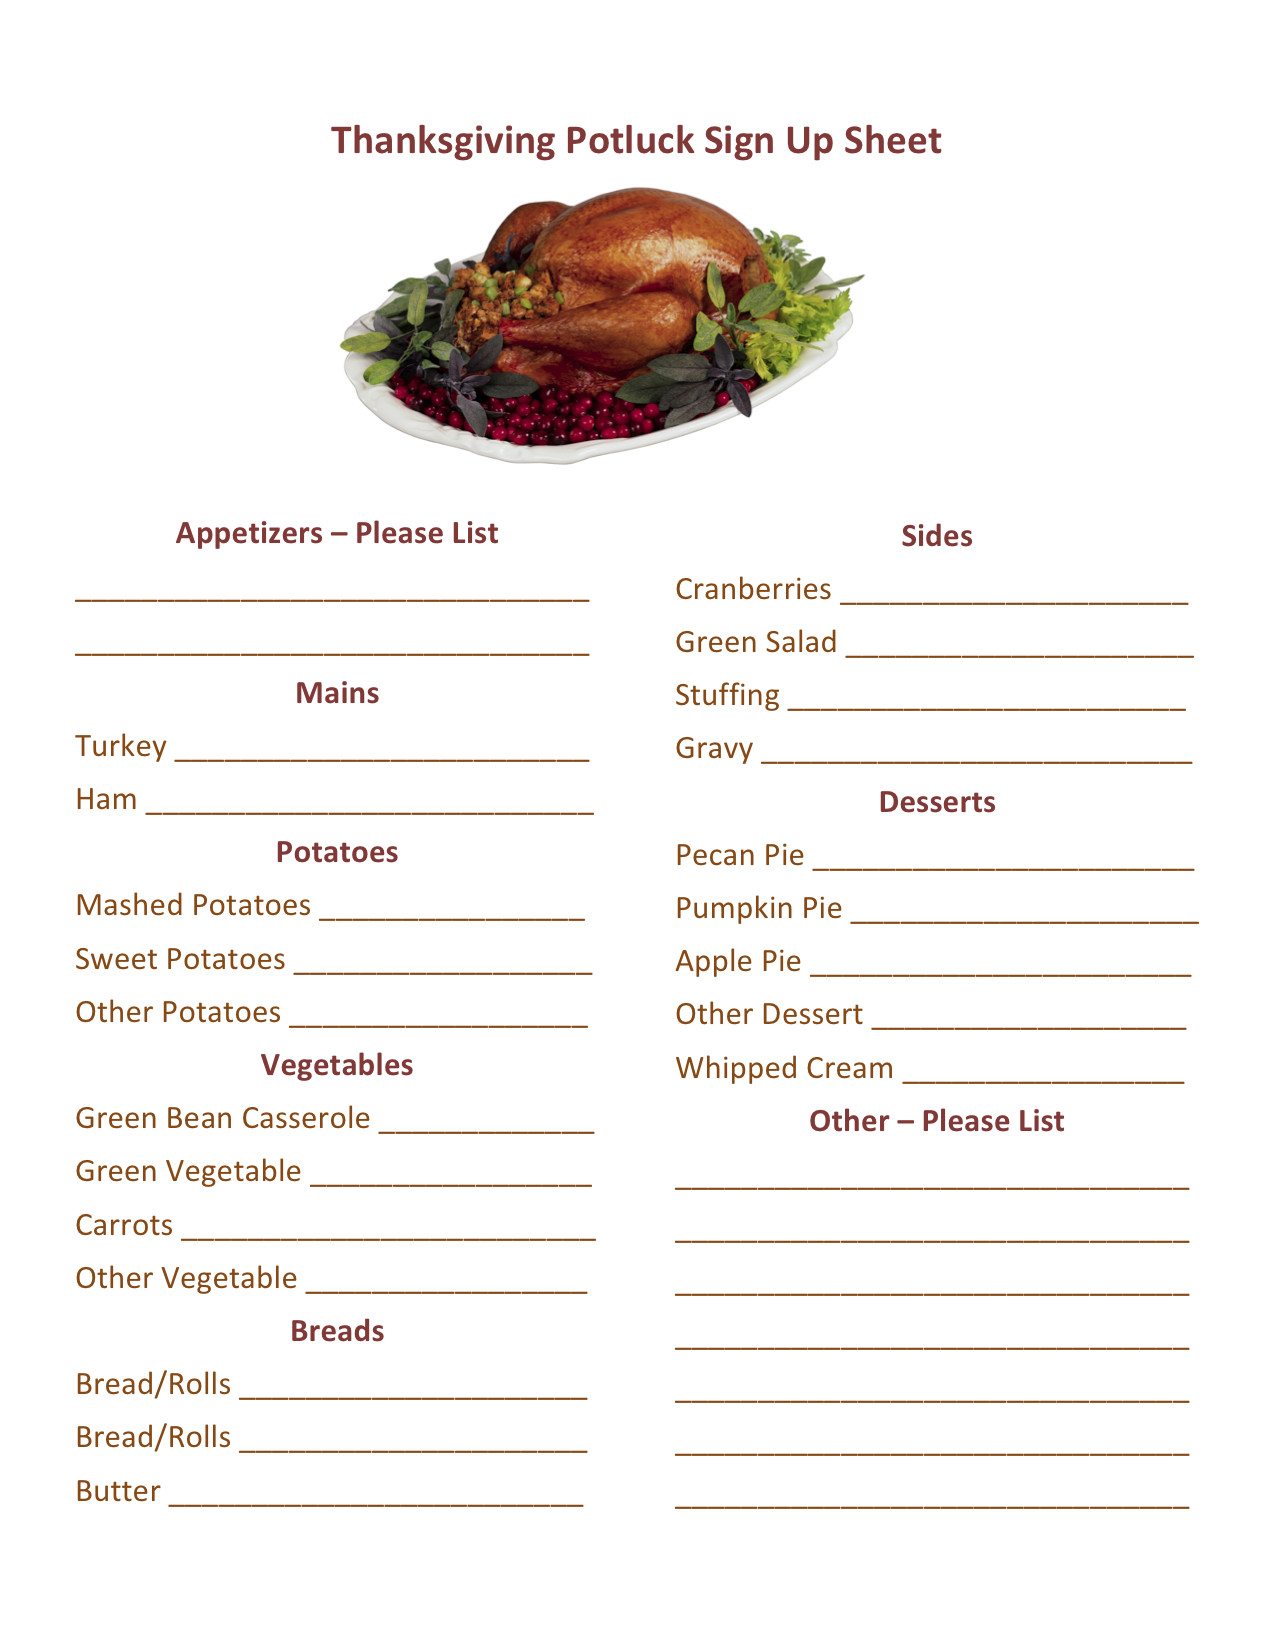 Christmas Potluck Signup Sheet Thanksgiving Potluck Sign Up Printable